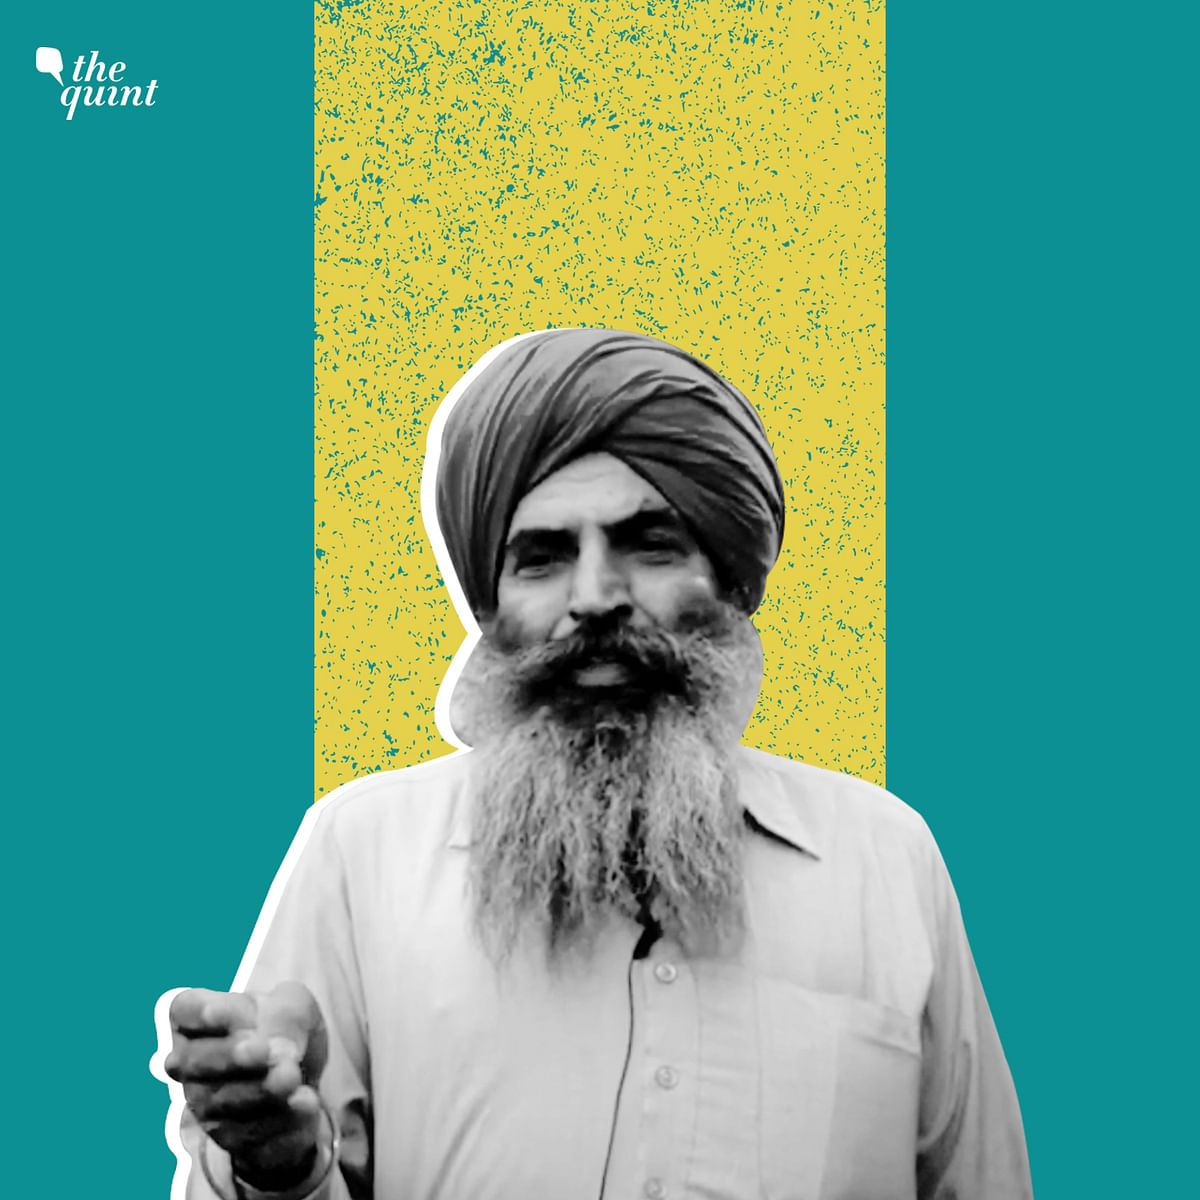 Kuldeep Singh, a protester from Fazilka in Punjab, has composed a song on the plight of farmers.